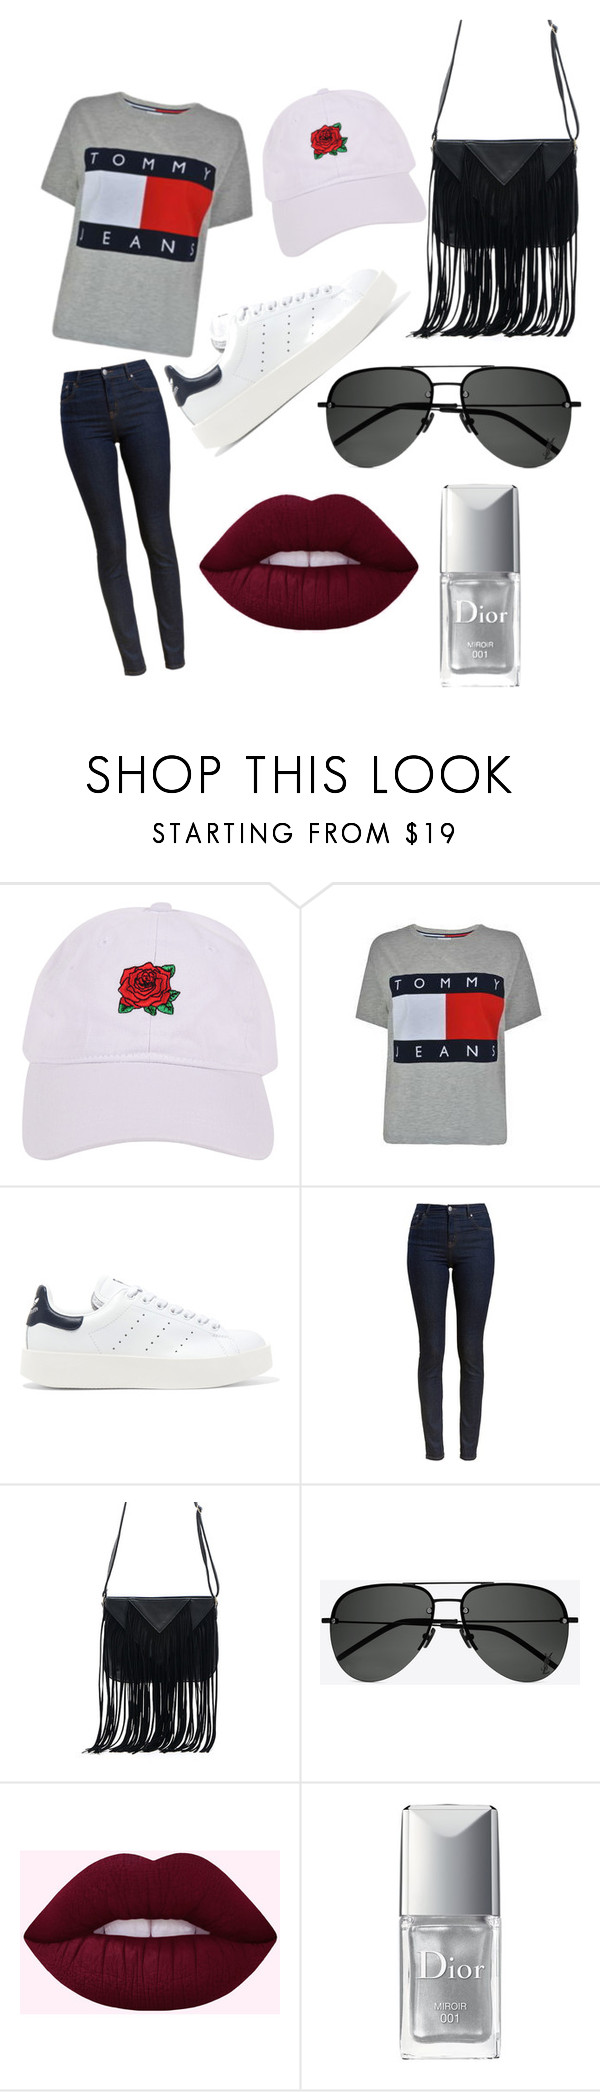 """""""My kind of Casual Style"""" by laceygail ❤ liked on Polyvore featuring Armitage Avenue, Tommy Hilfiger, adidas Originals, Barbour, WithChic, Yves Saint Laurent and Christian Dior"""